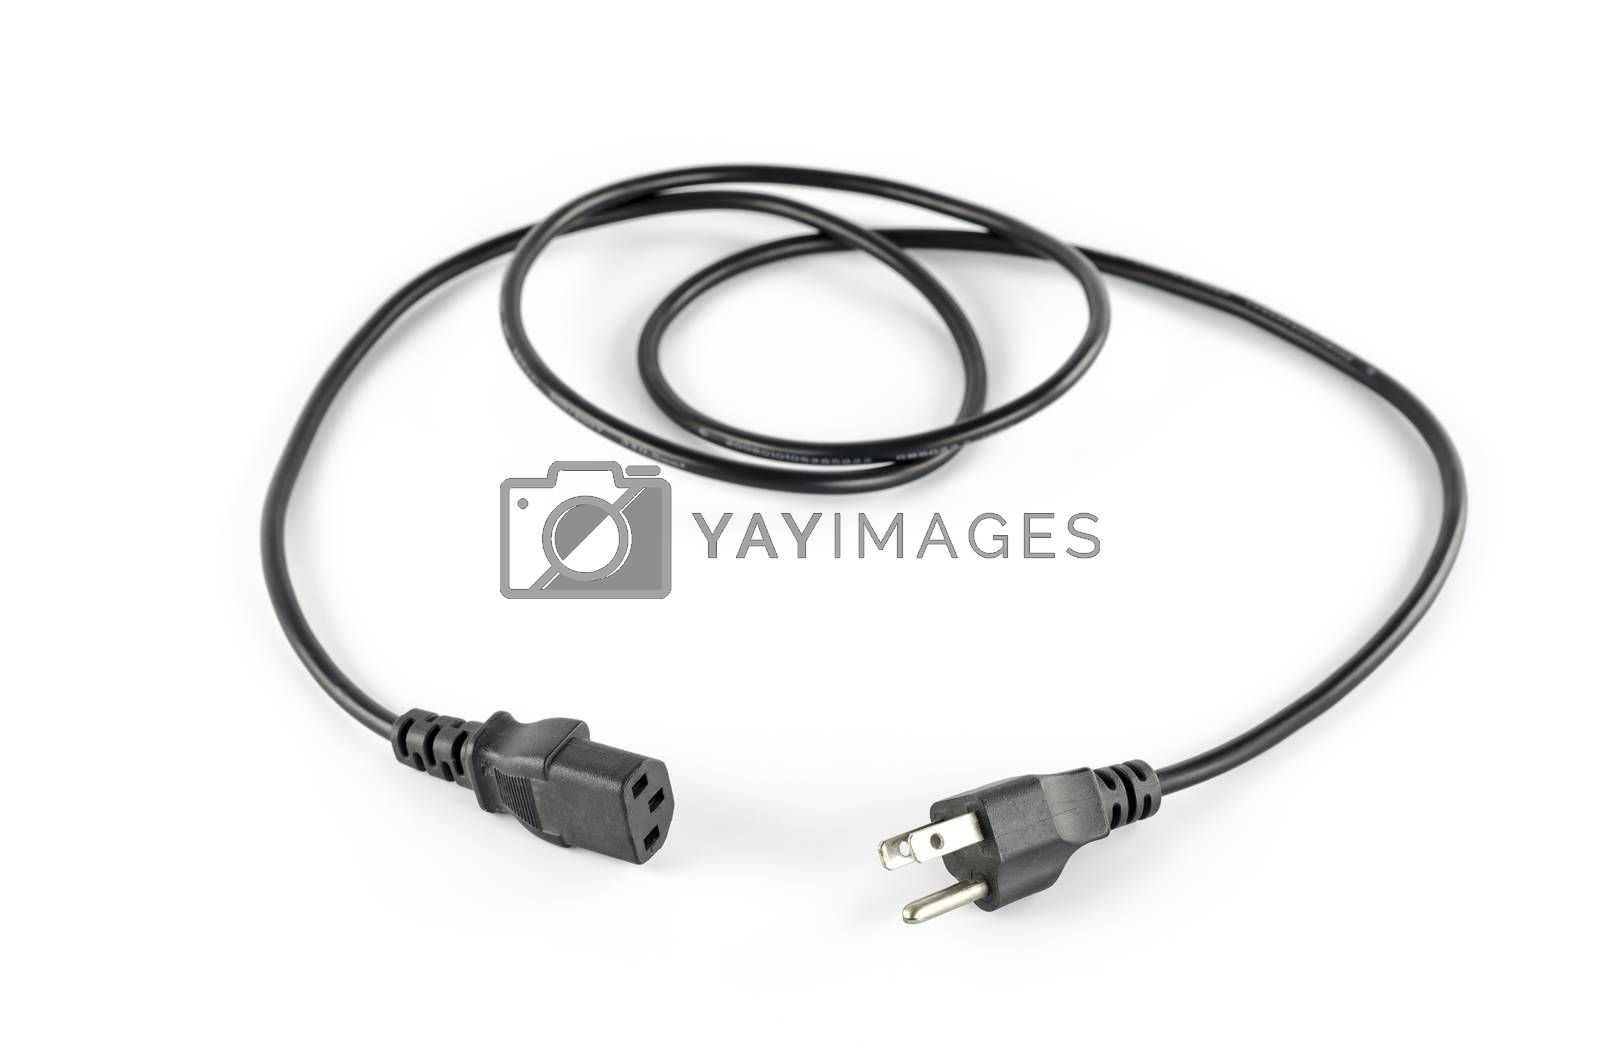 Royalty free image of computer power plug cable by ammza12